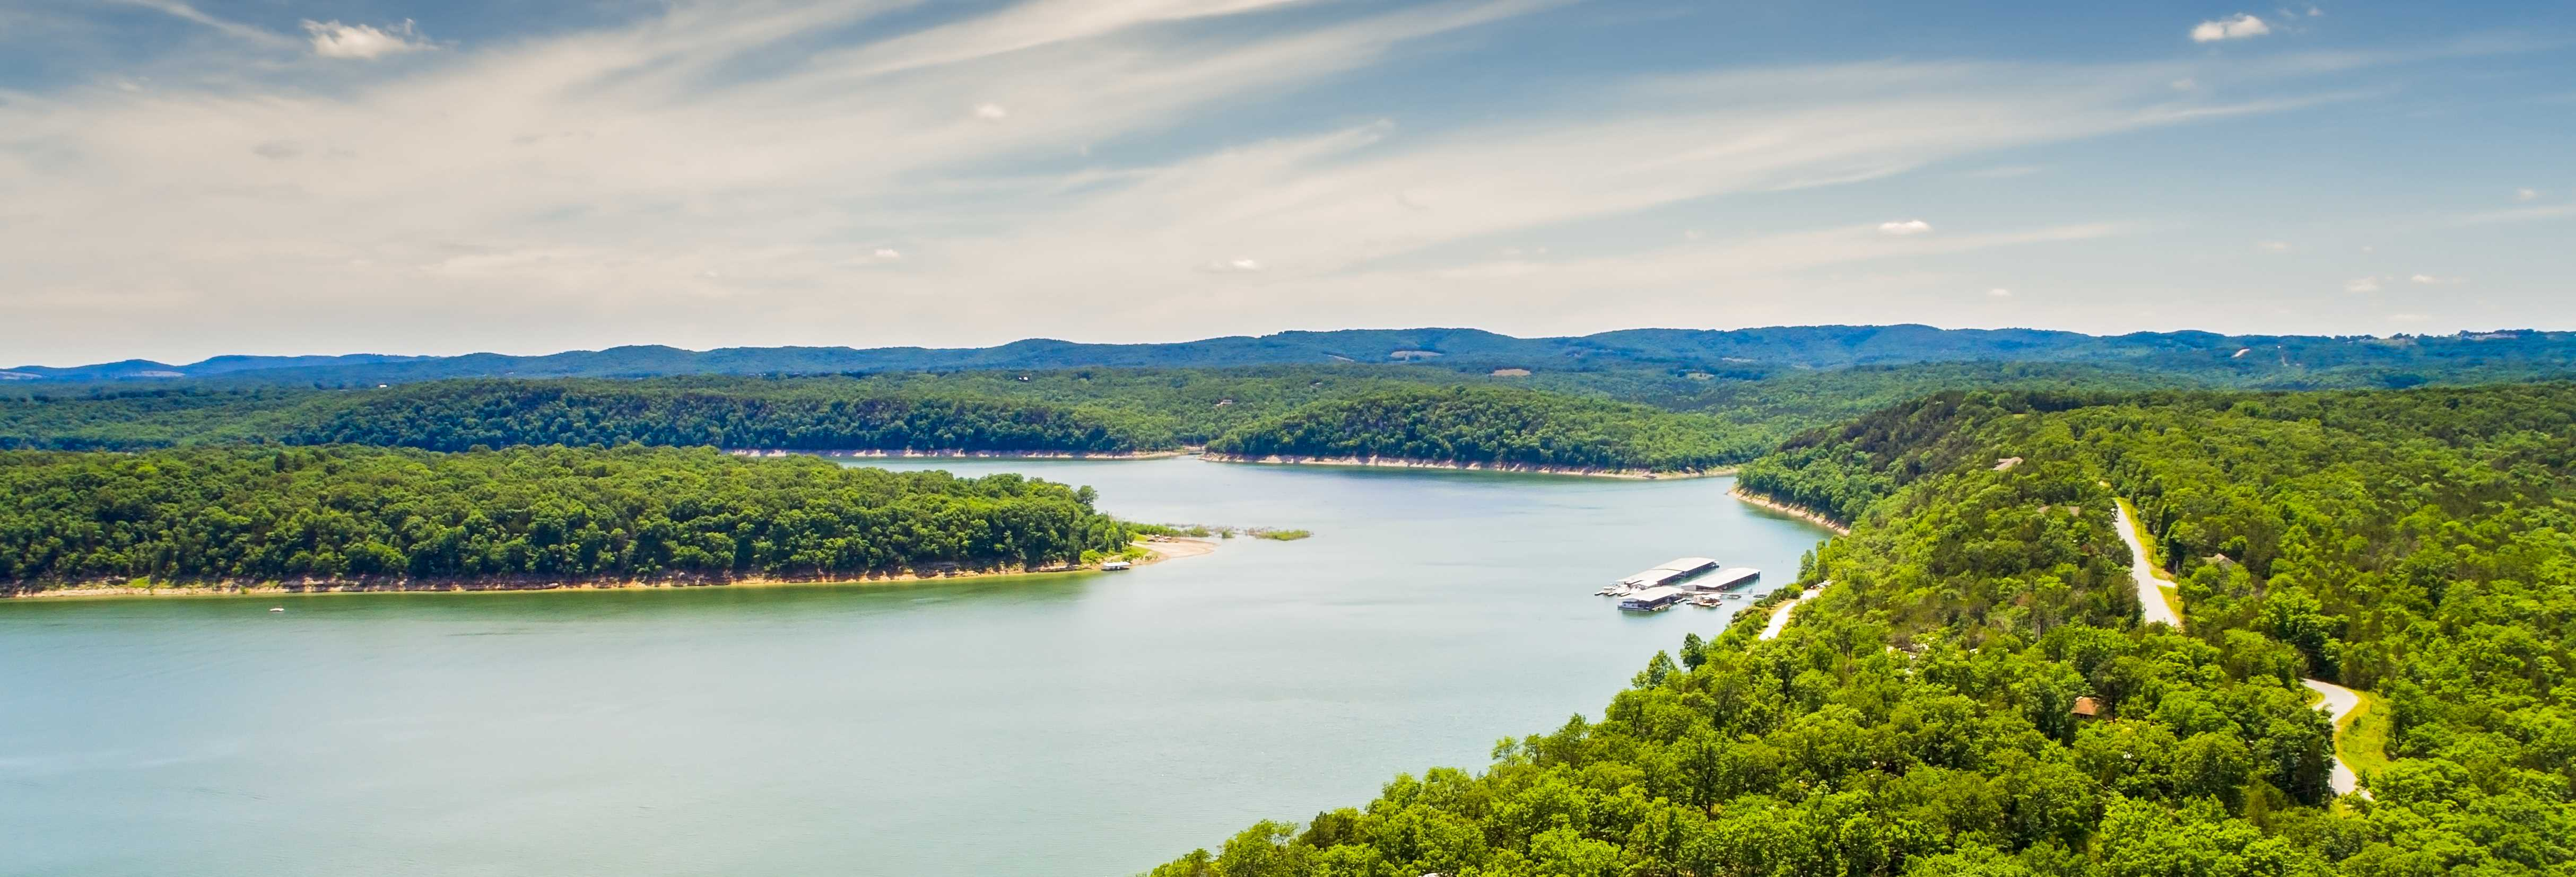 Our Beautiful Ozarks - Boat Slip Real Estate for Sale Table Rock Lake